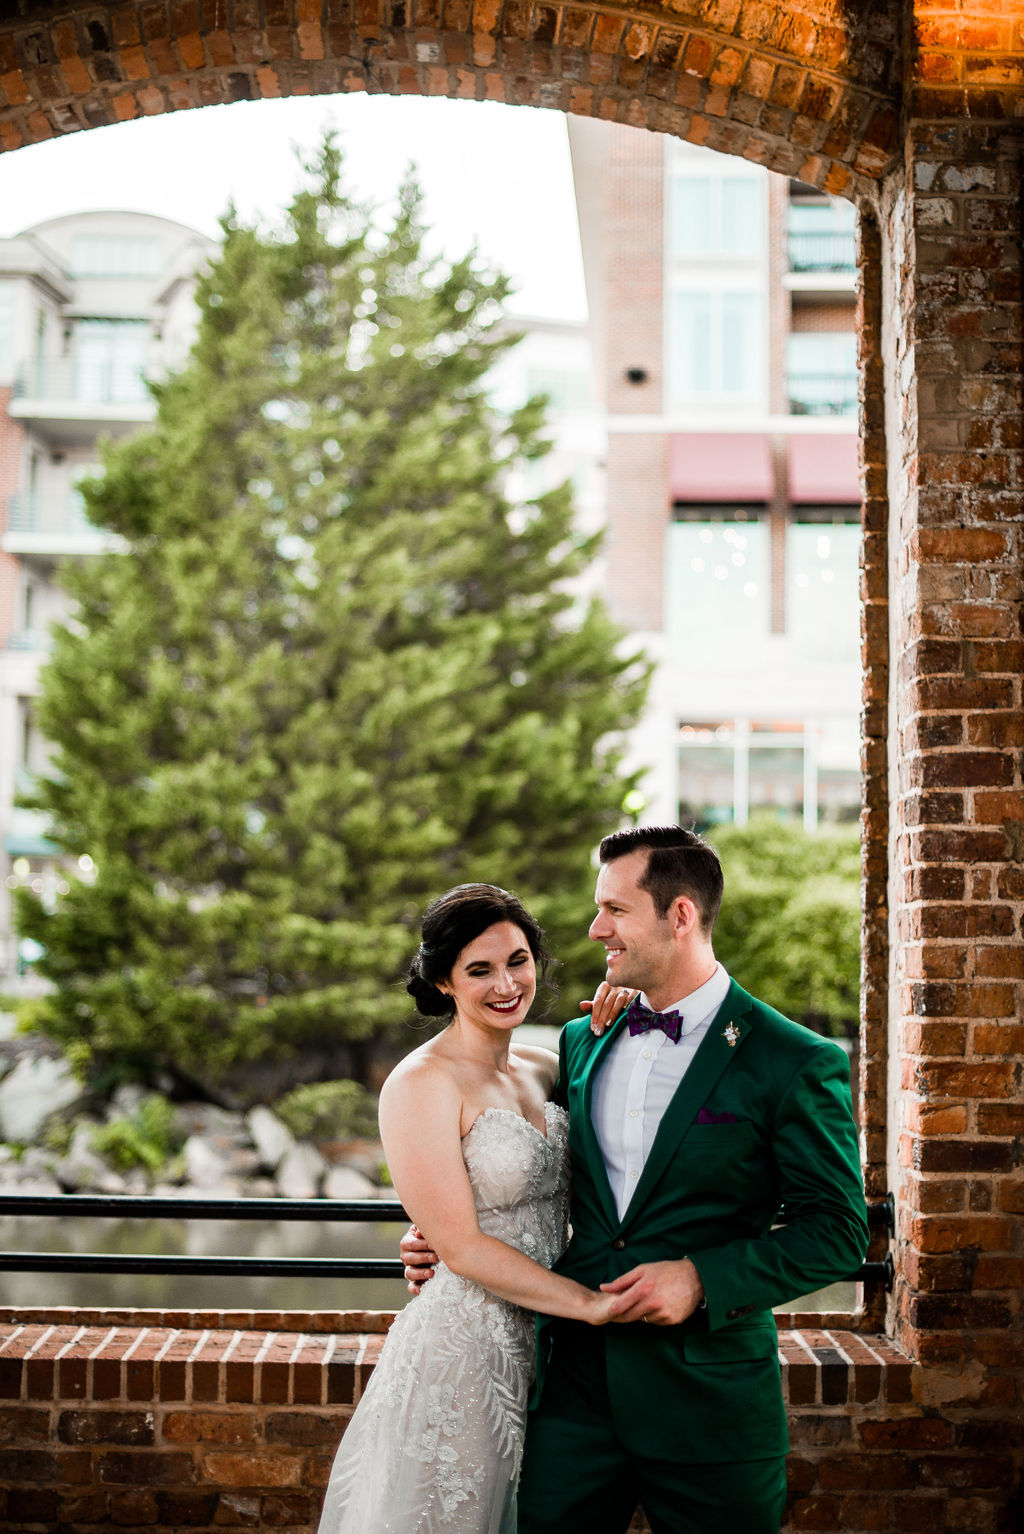 Downtown_Greenville_Wedding_Larkins-554.jpg